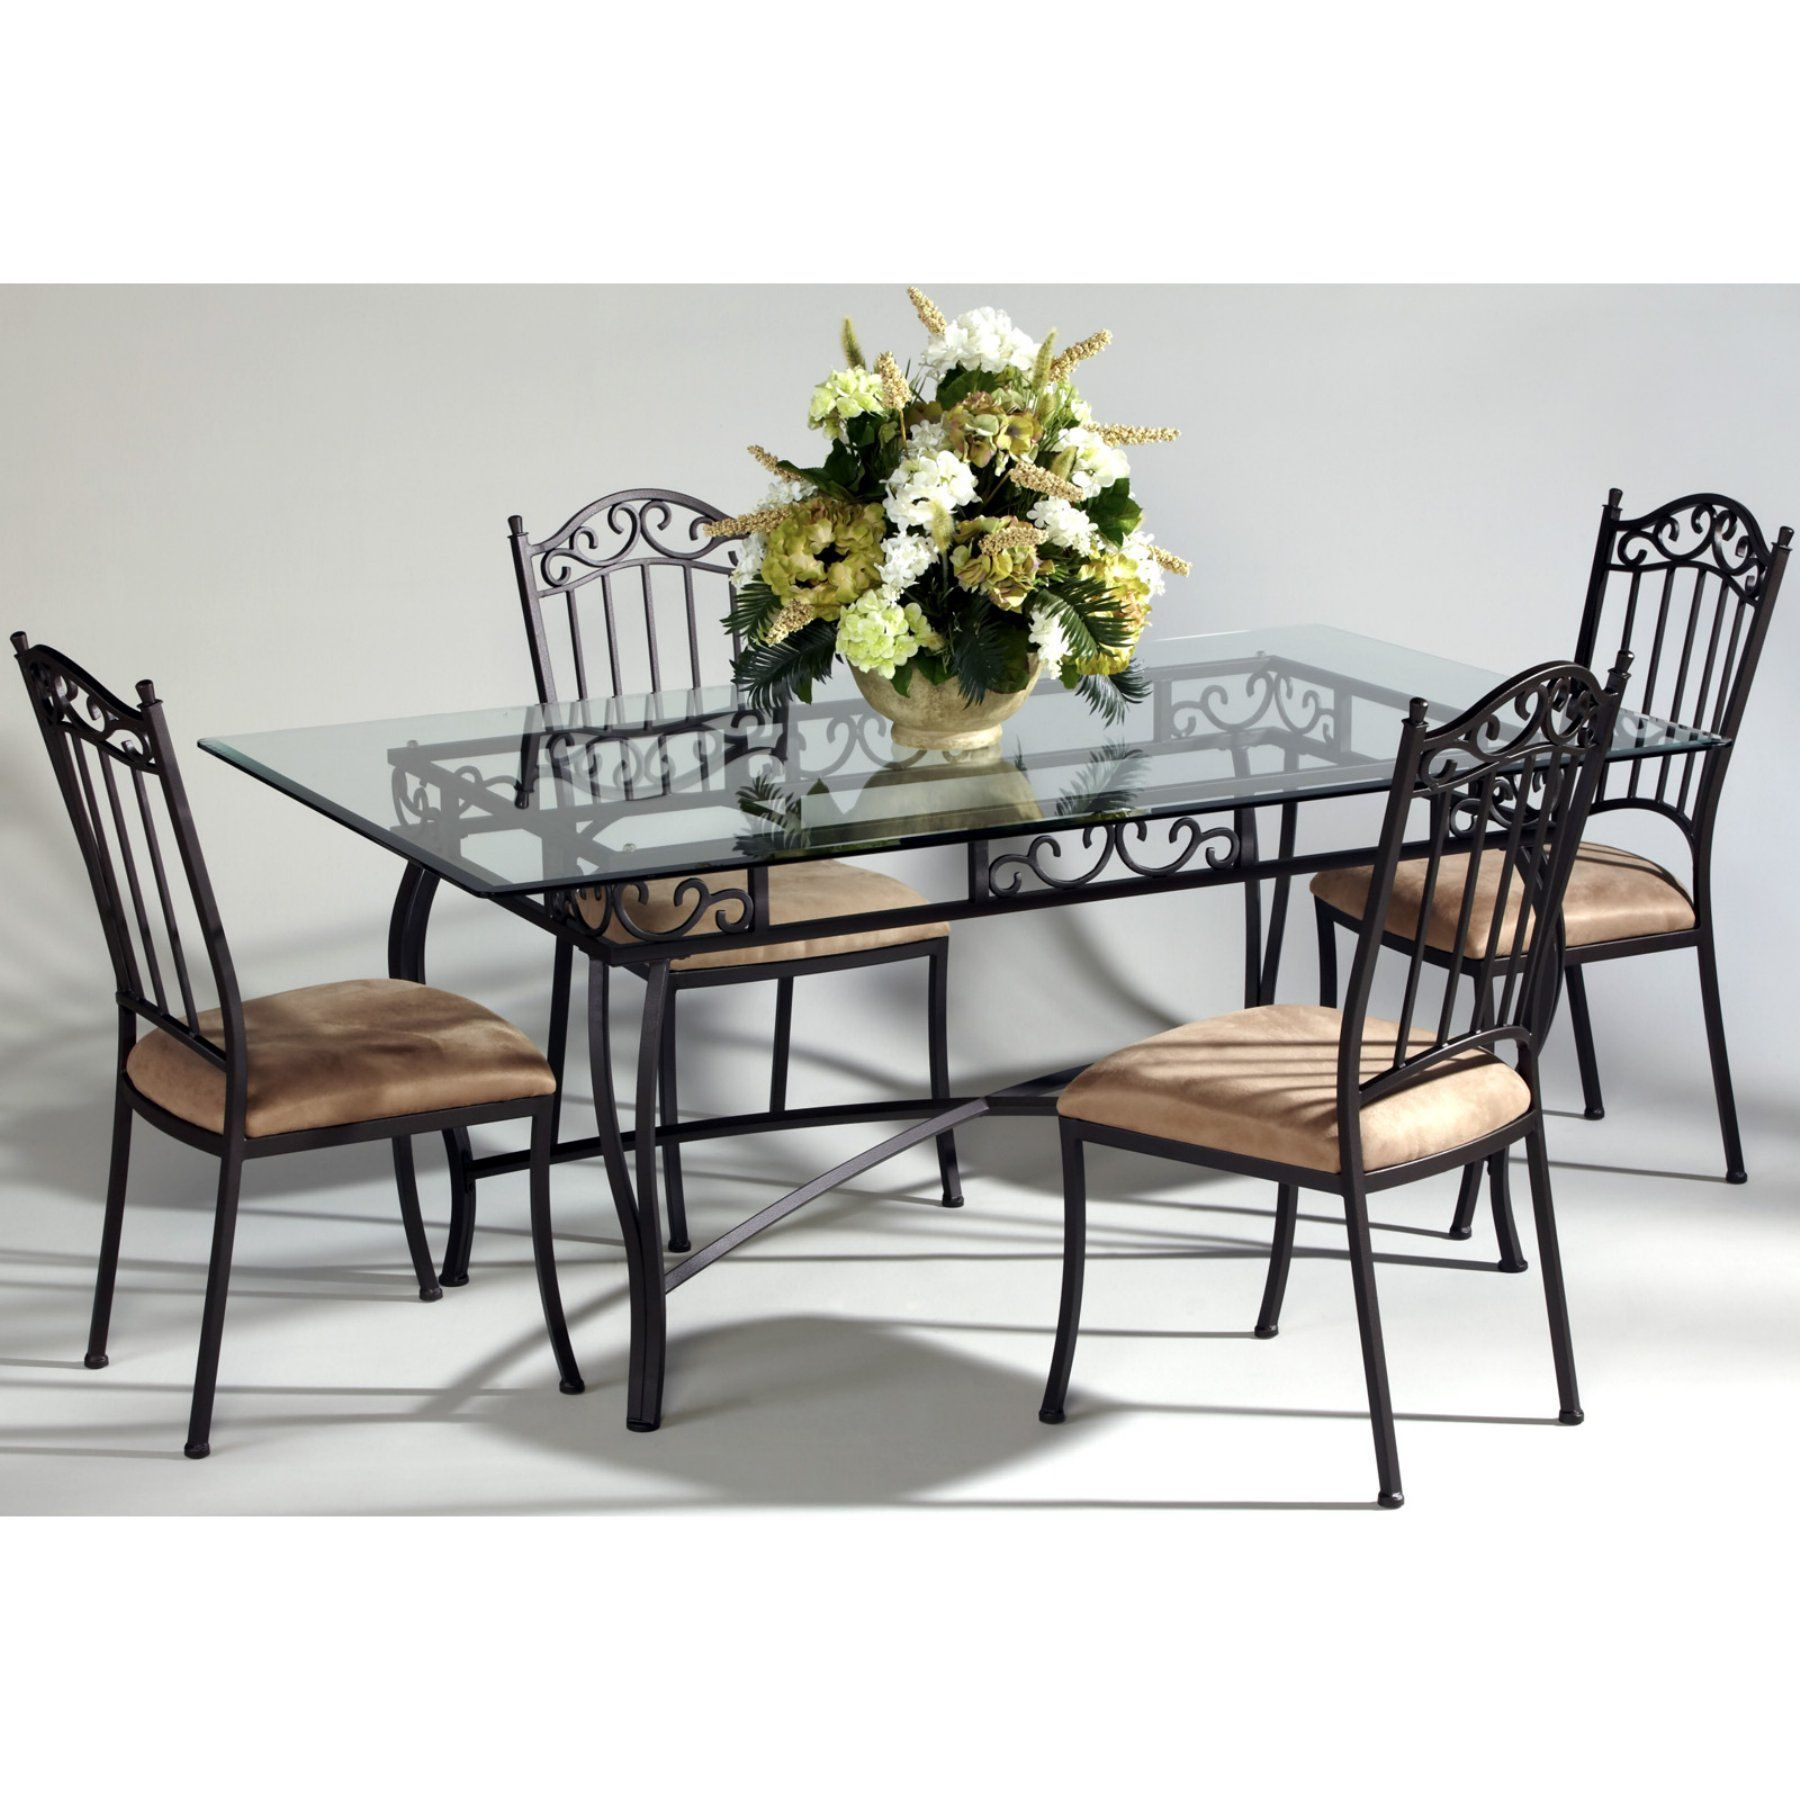 Chintaly Bethel Rectangular Wrought Iron Dining Table With Glass